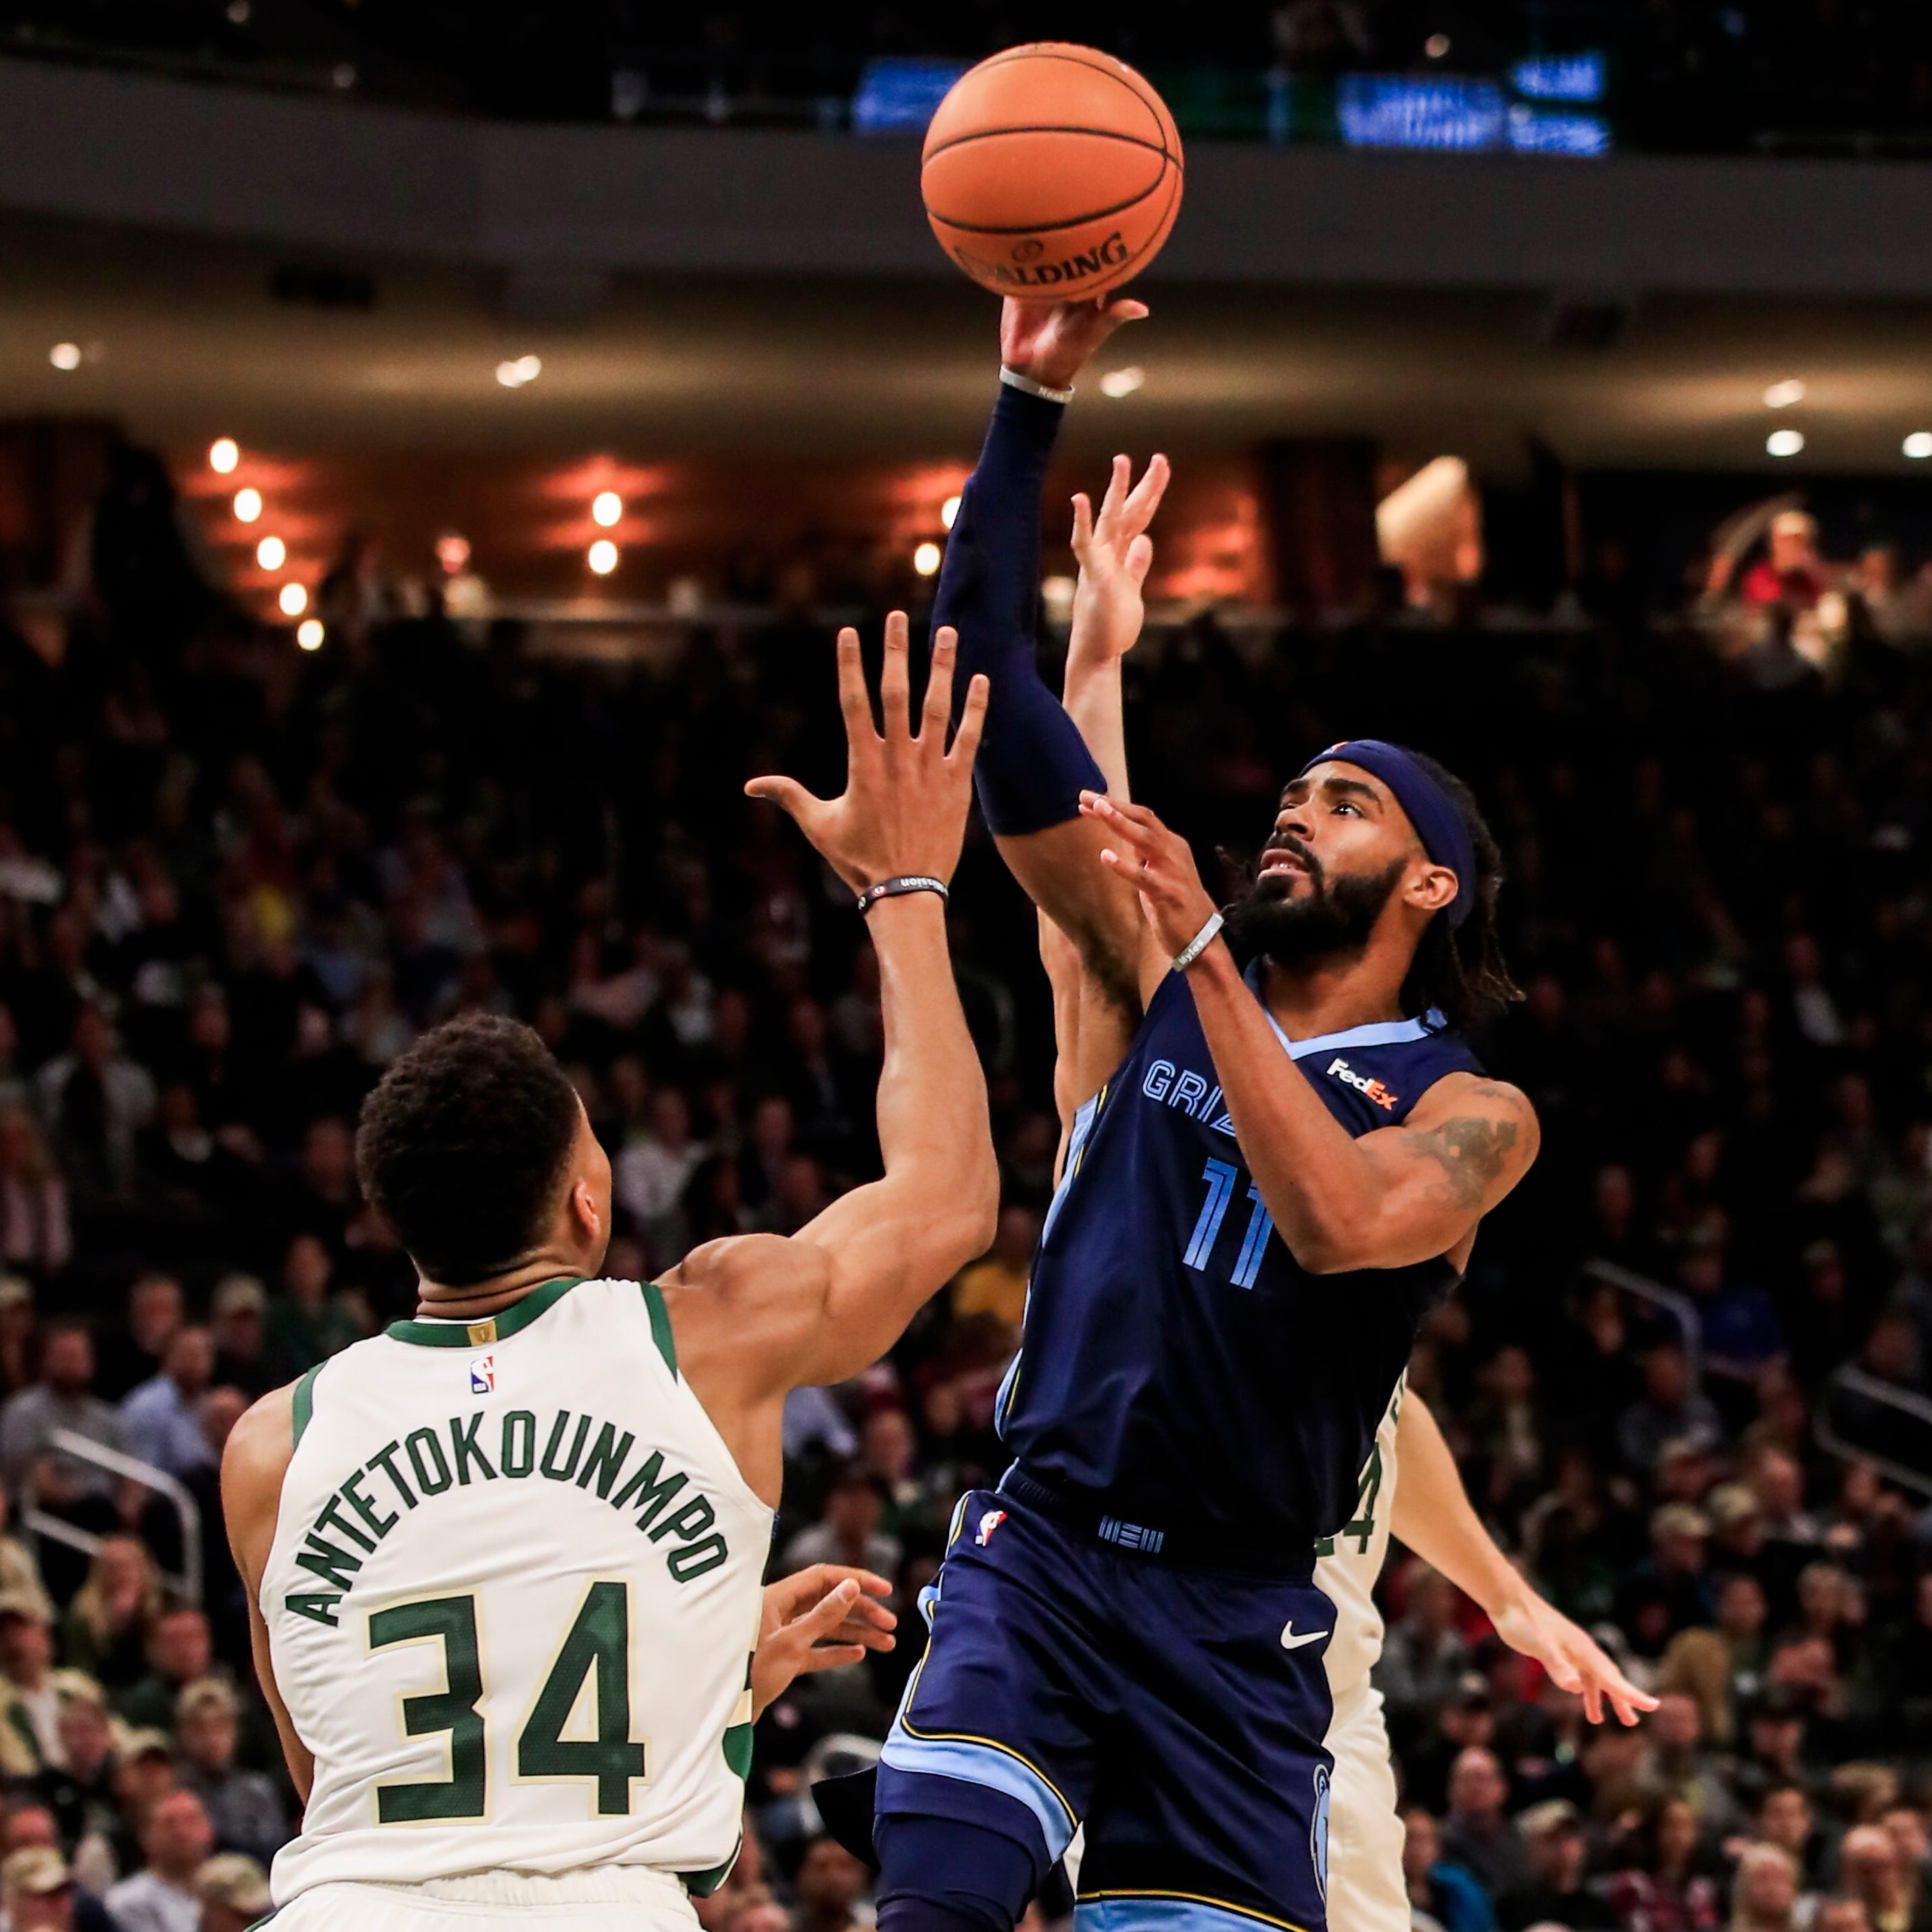 Grizzlies 116, Bucks 113: Two solid stretches aren't enough to keep the home streak alive